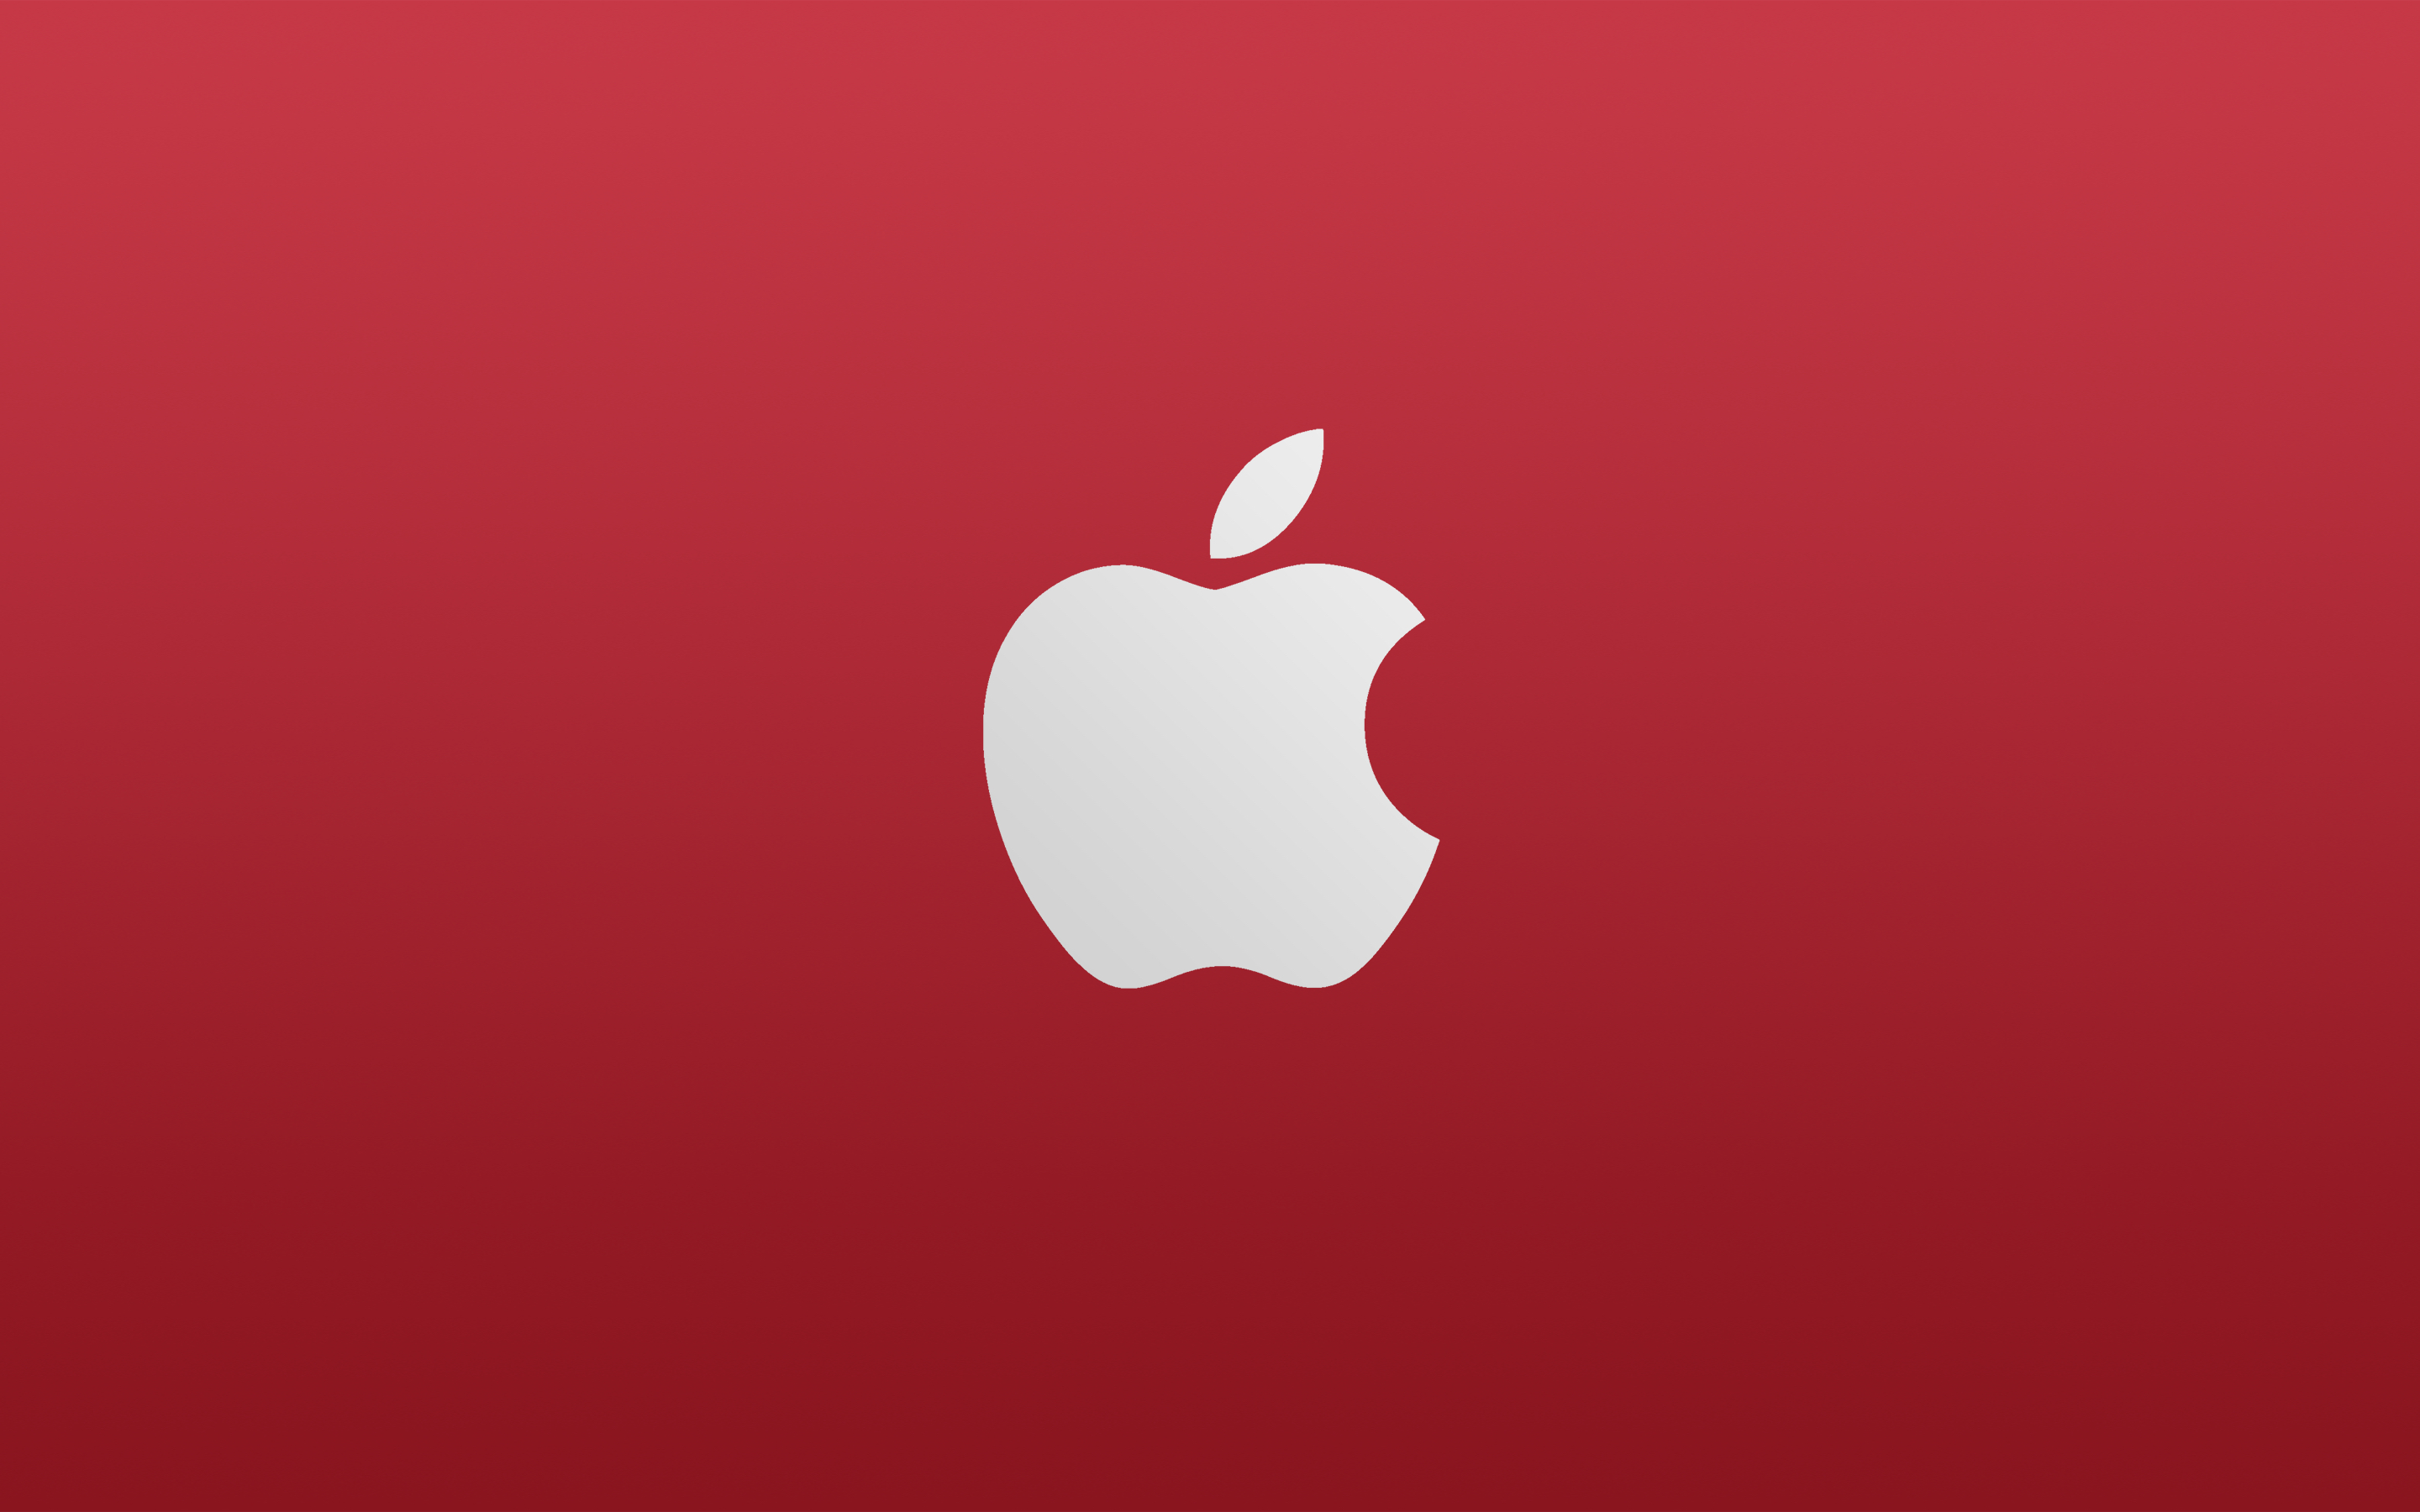 IPhone 7 (PRODUCT)RED-inspired Wallpapers